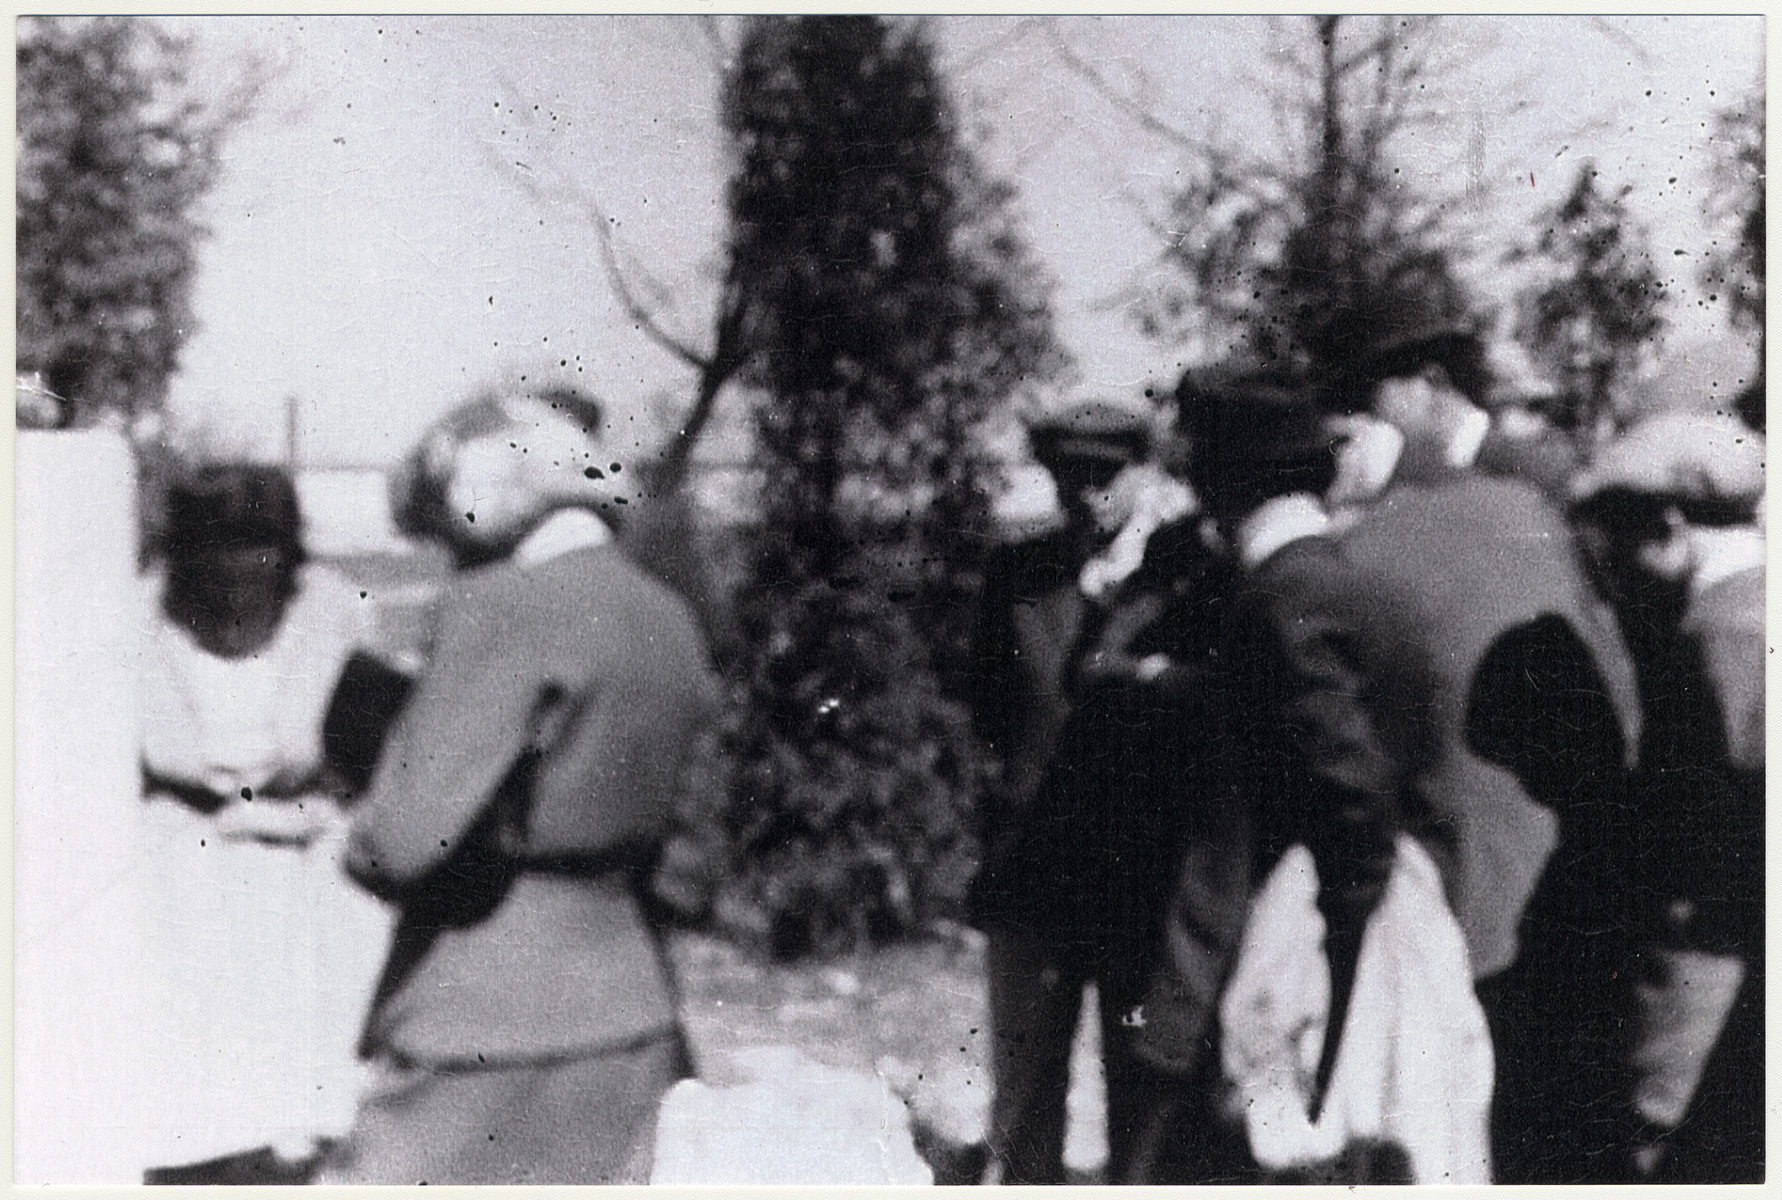 Mourners march to the gravesite during the funeral of Joel Klinger.  The lady whose back is towards the camera is Ruth Klinger , soon to be Piotrkowski.